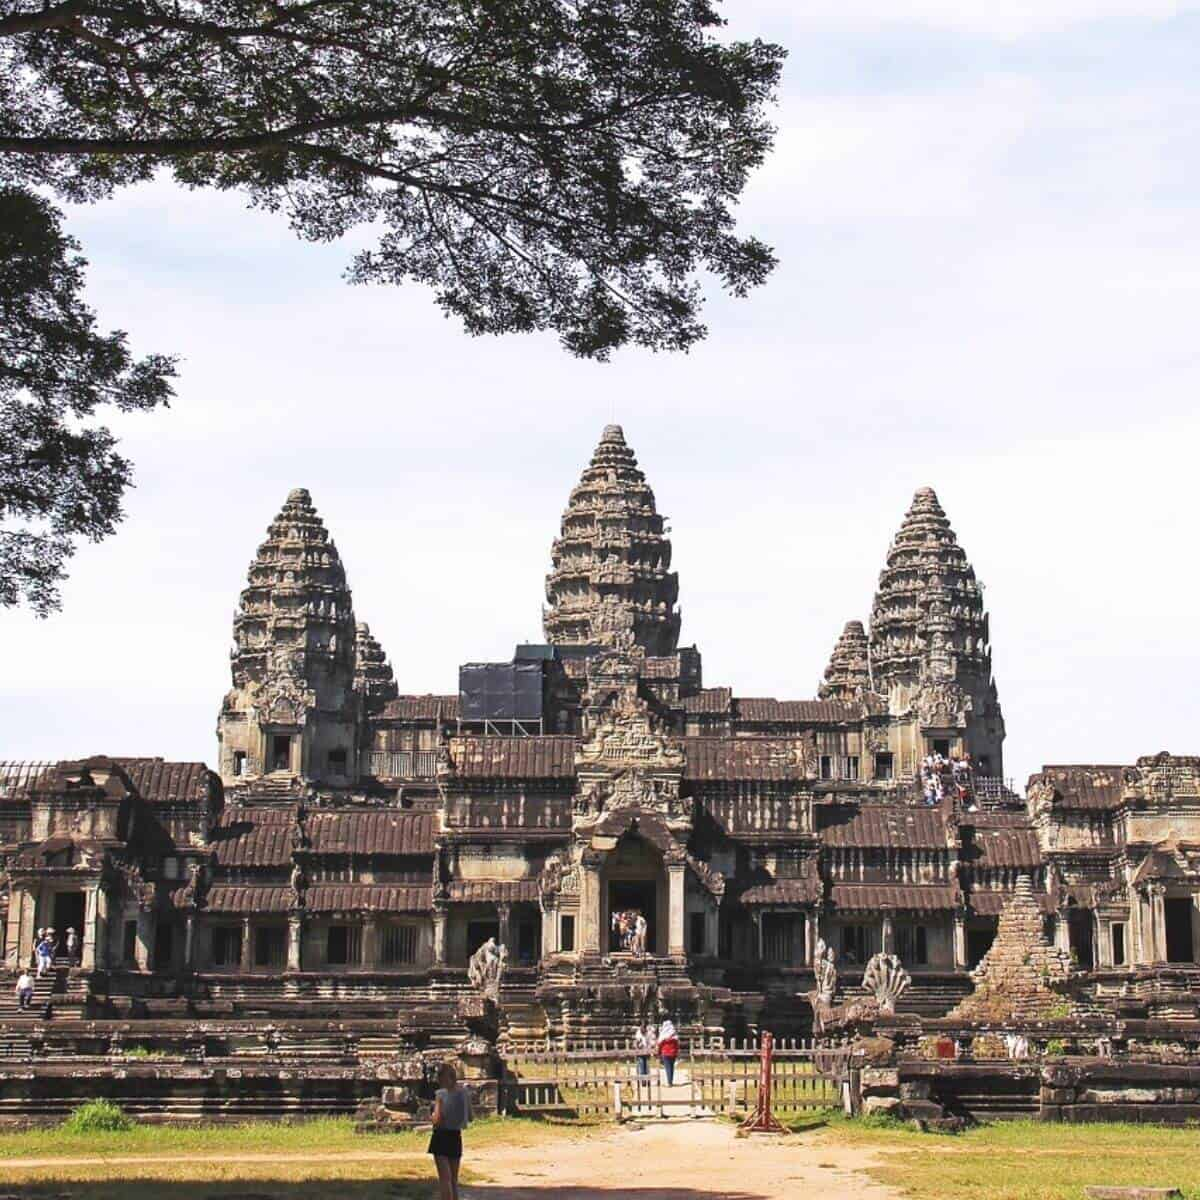 People entering the gate in front of Angkor Wat.